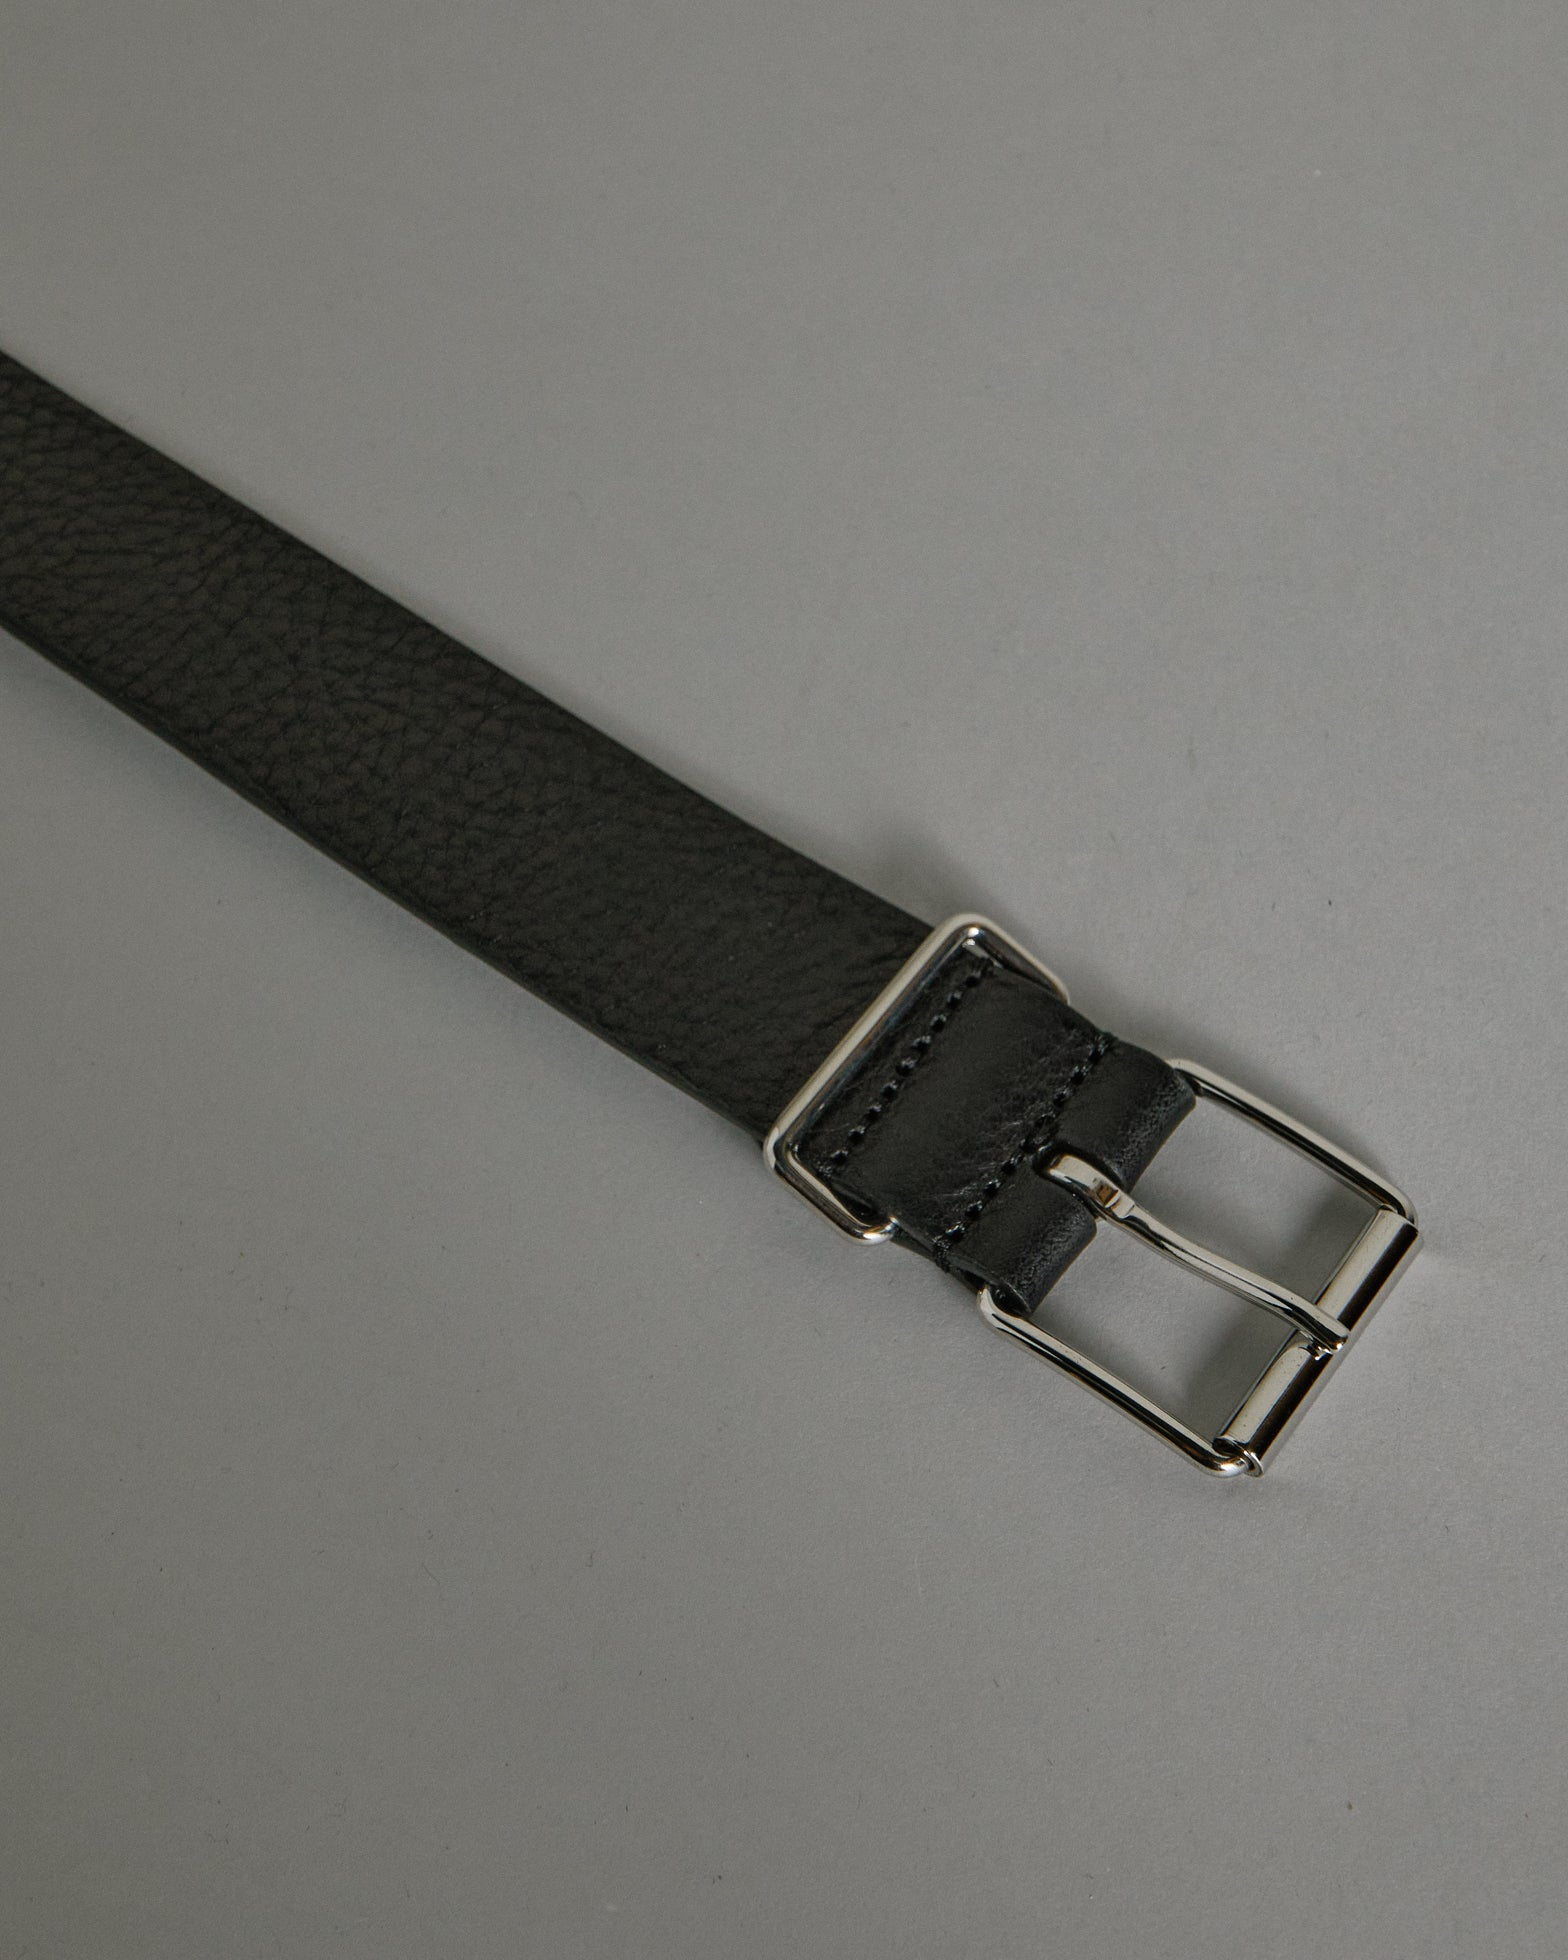 English Silver Buckle A1942PL35 Belt in Black